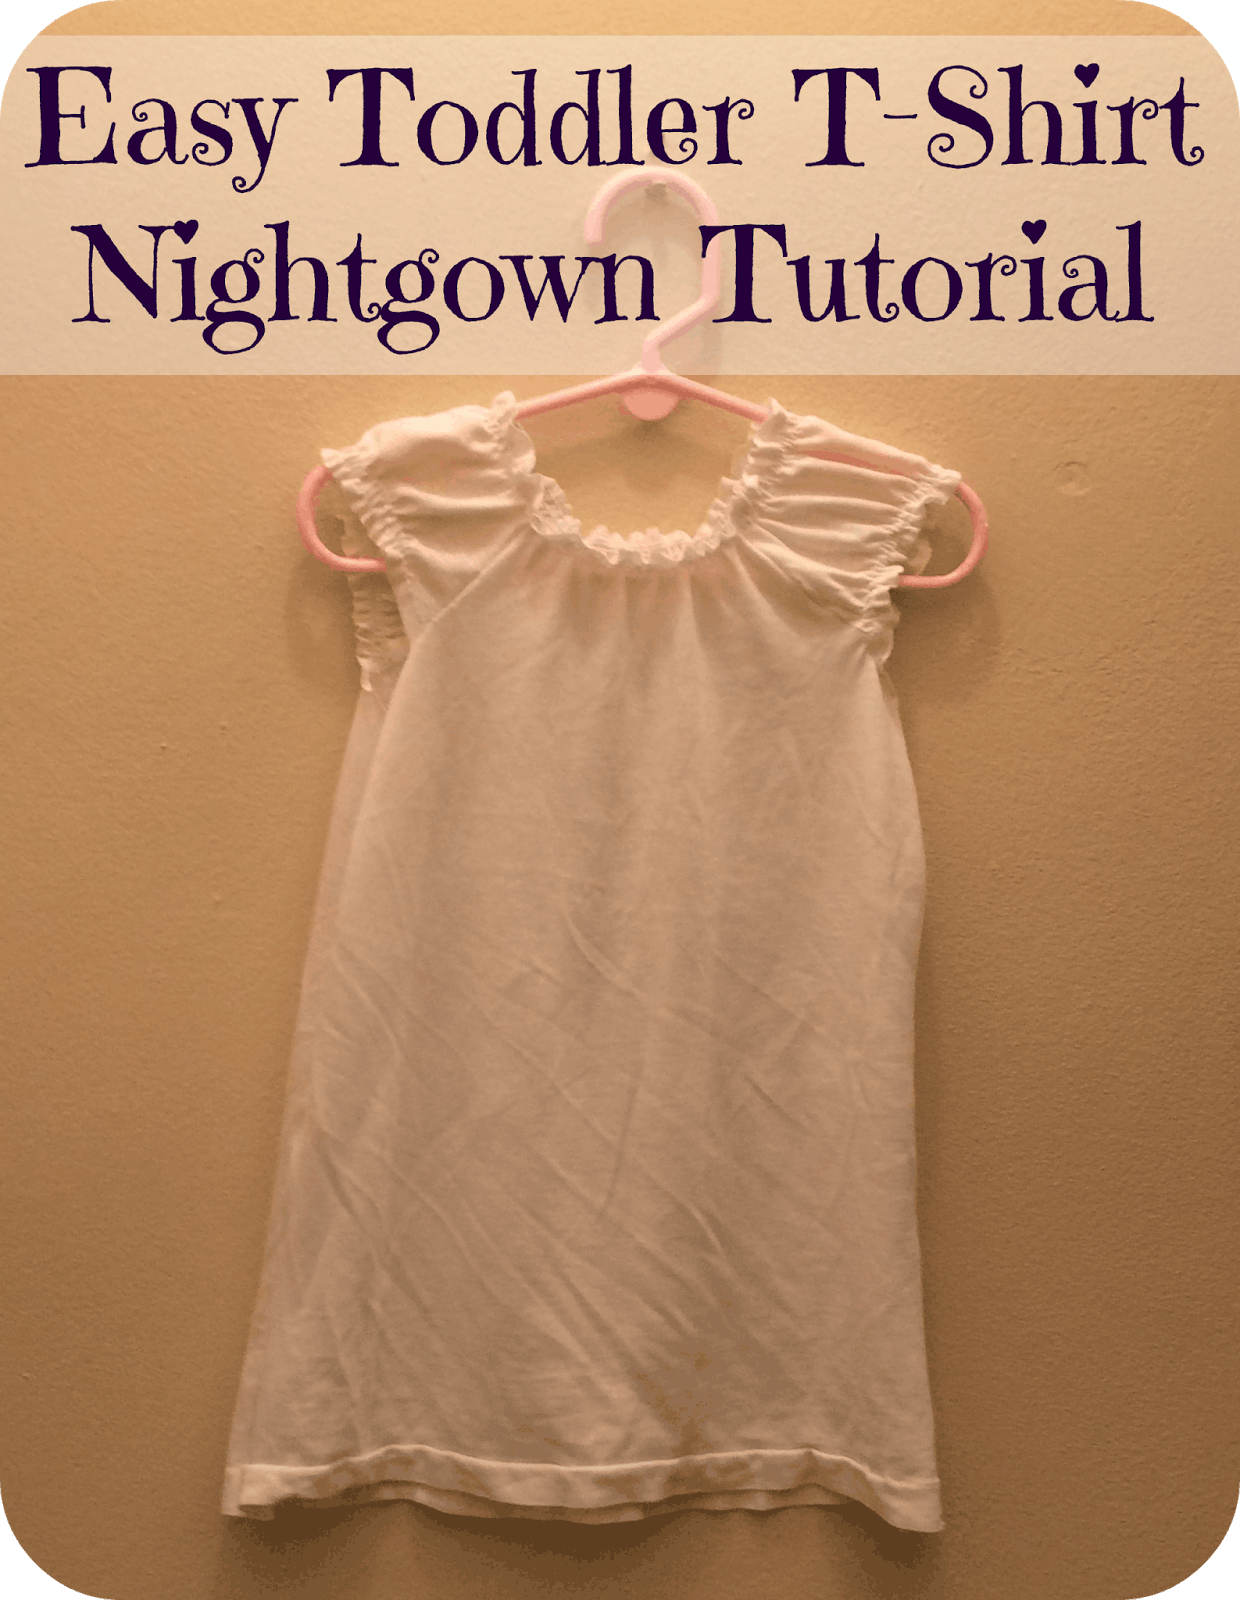 Easy toddler t-shirt nightgown